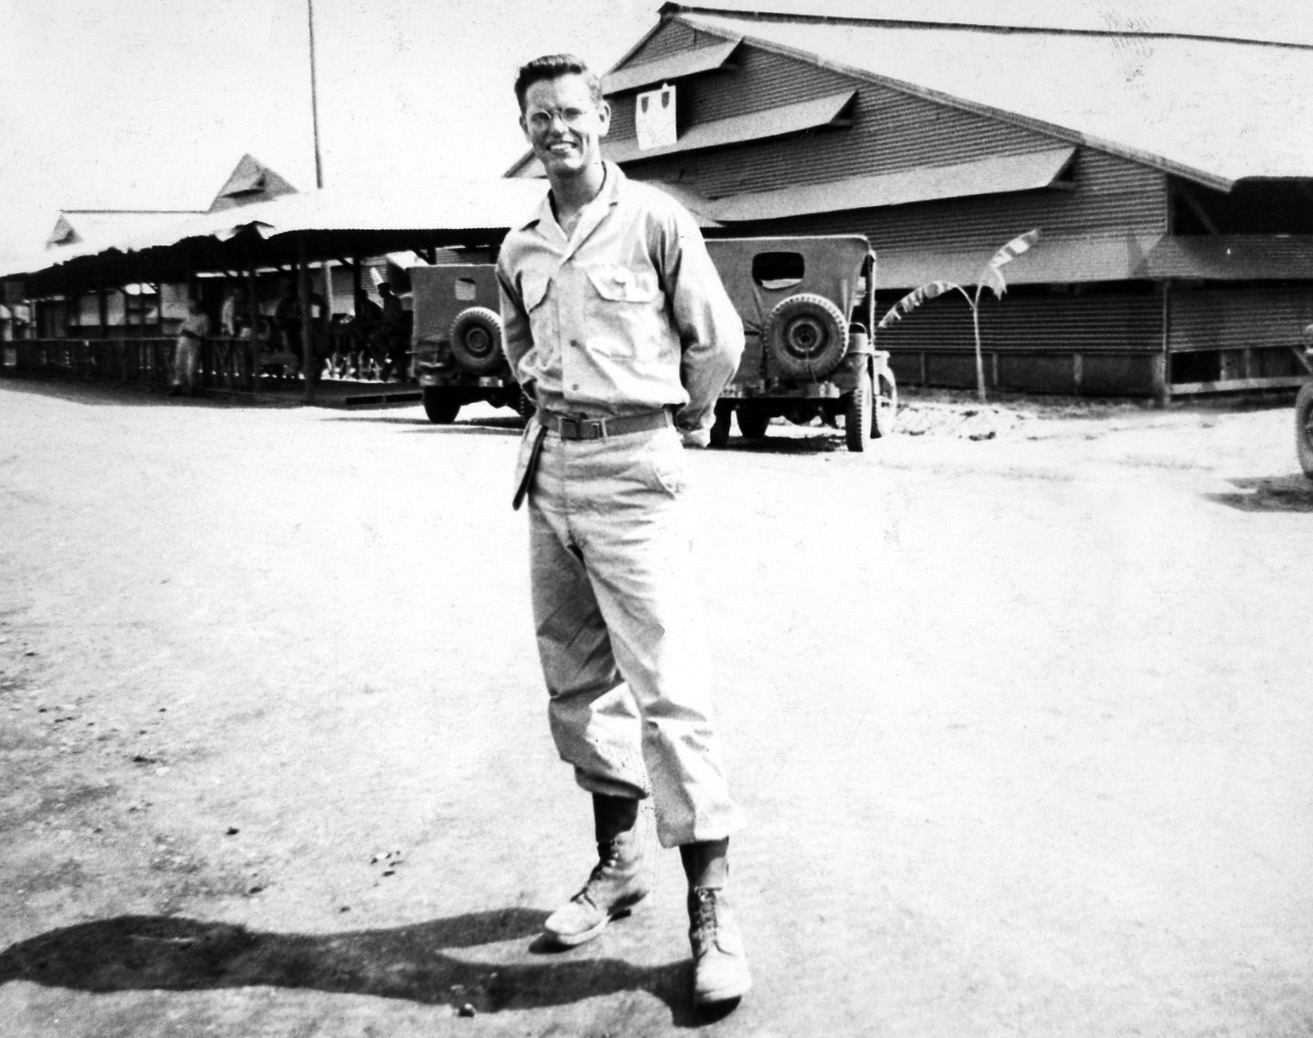 Man in the Philippines during World War II